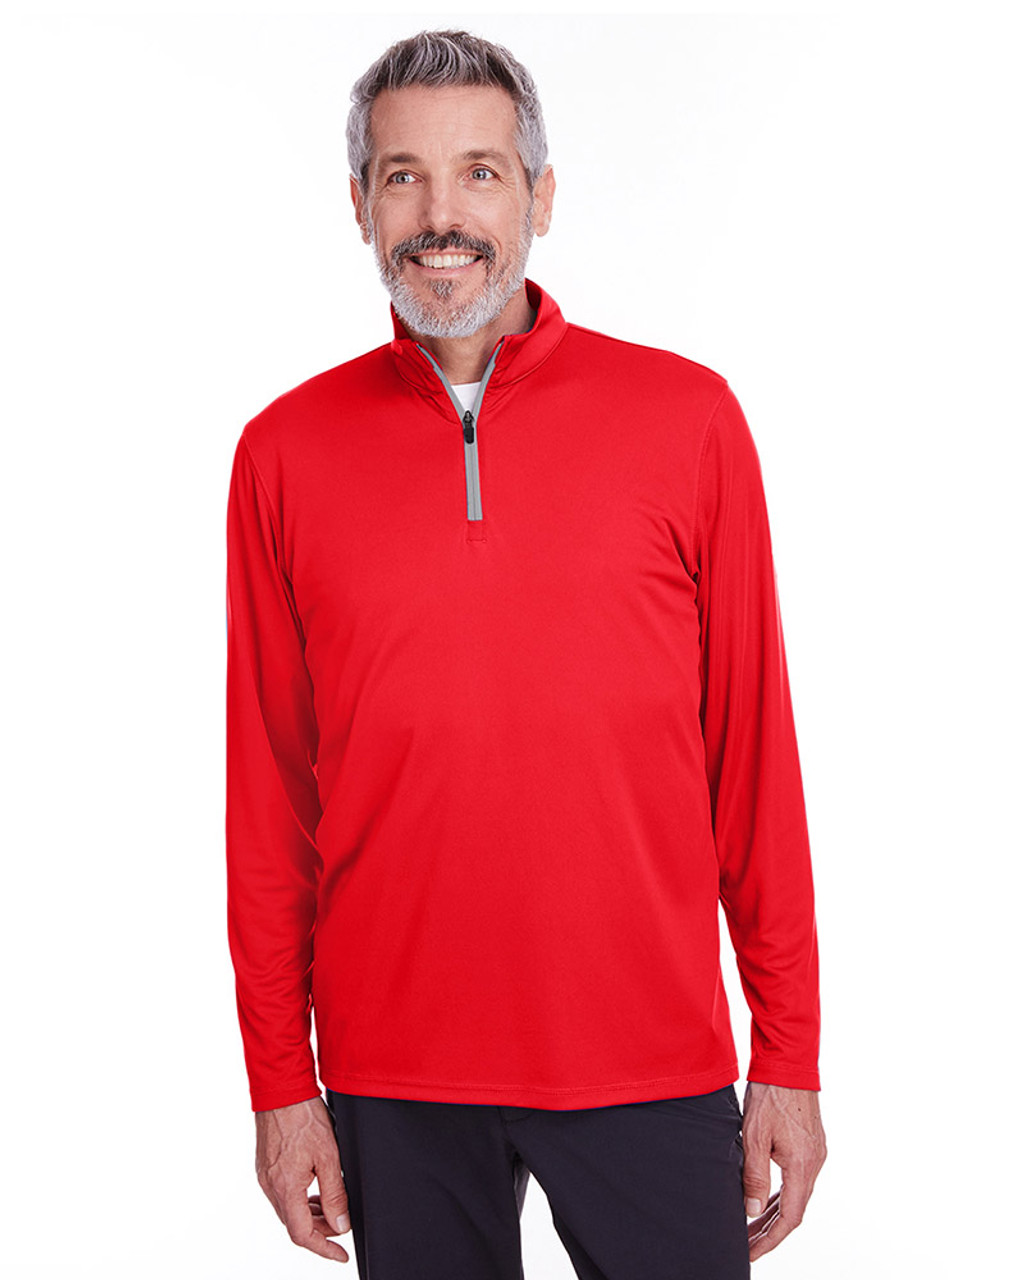 High Risk Red - 596807 Puma Golf Men's Icon Quarter-Zip Shirt | Blankclothing.ca